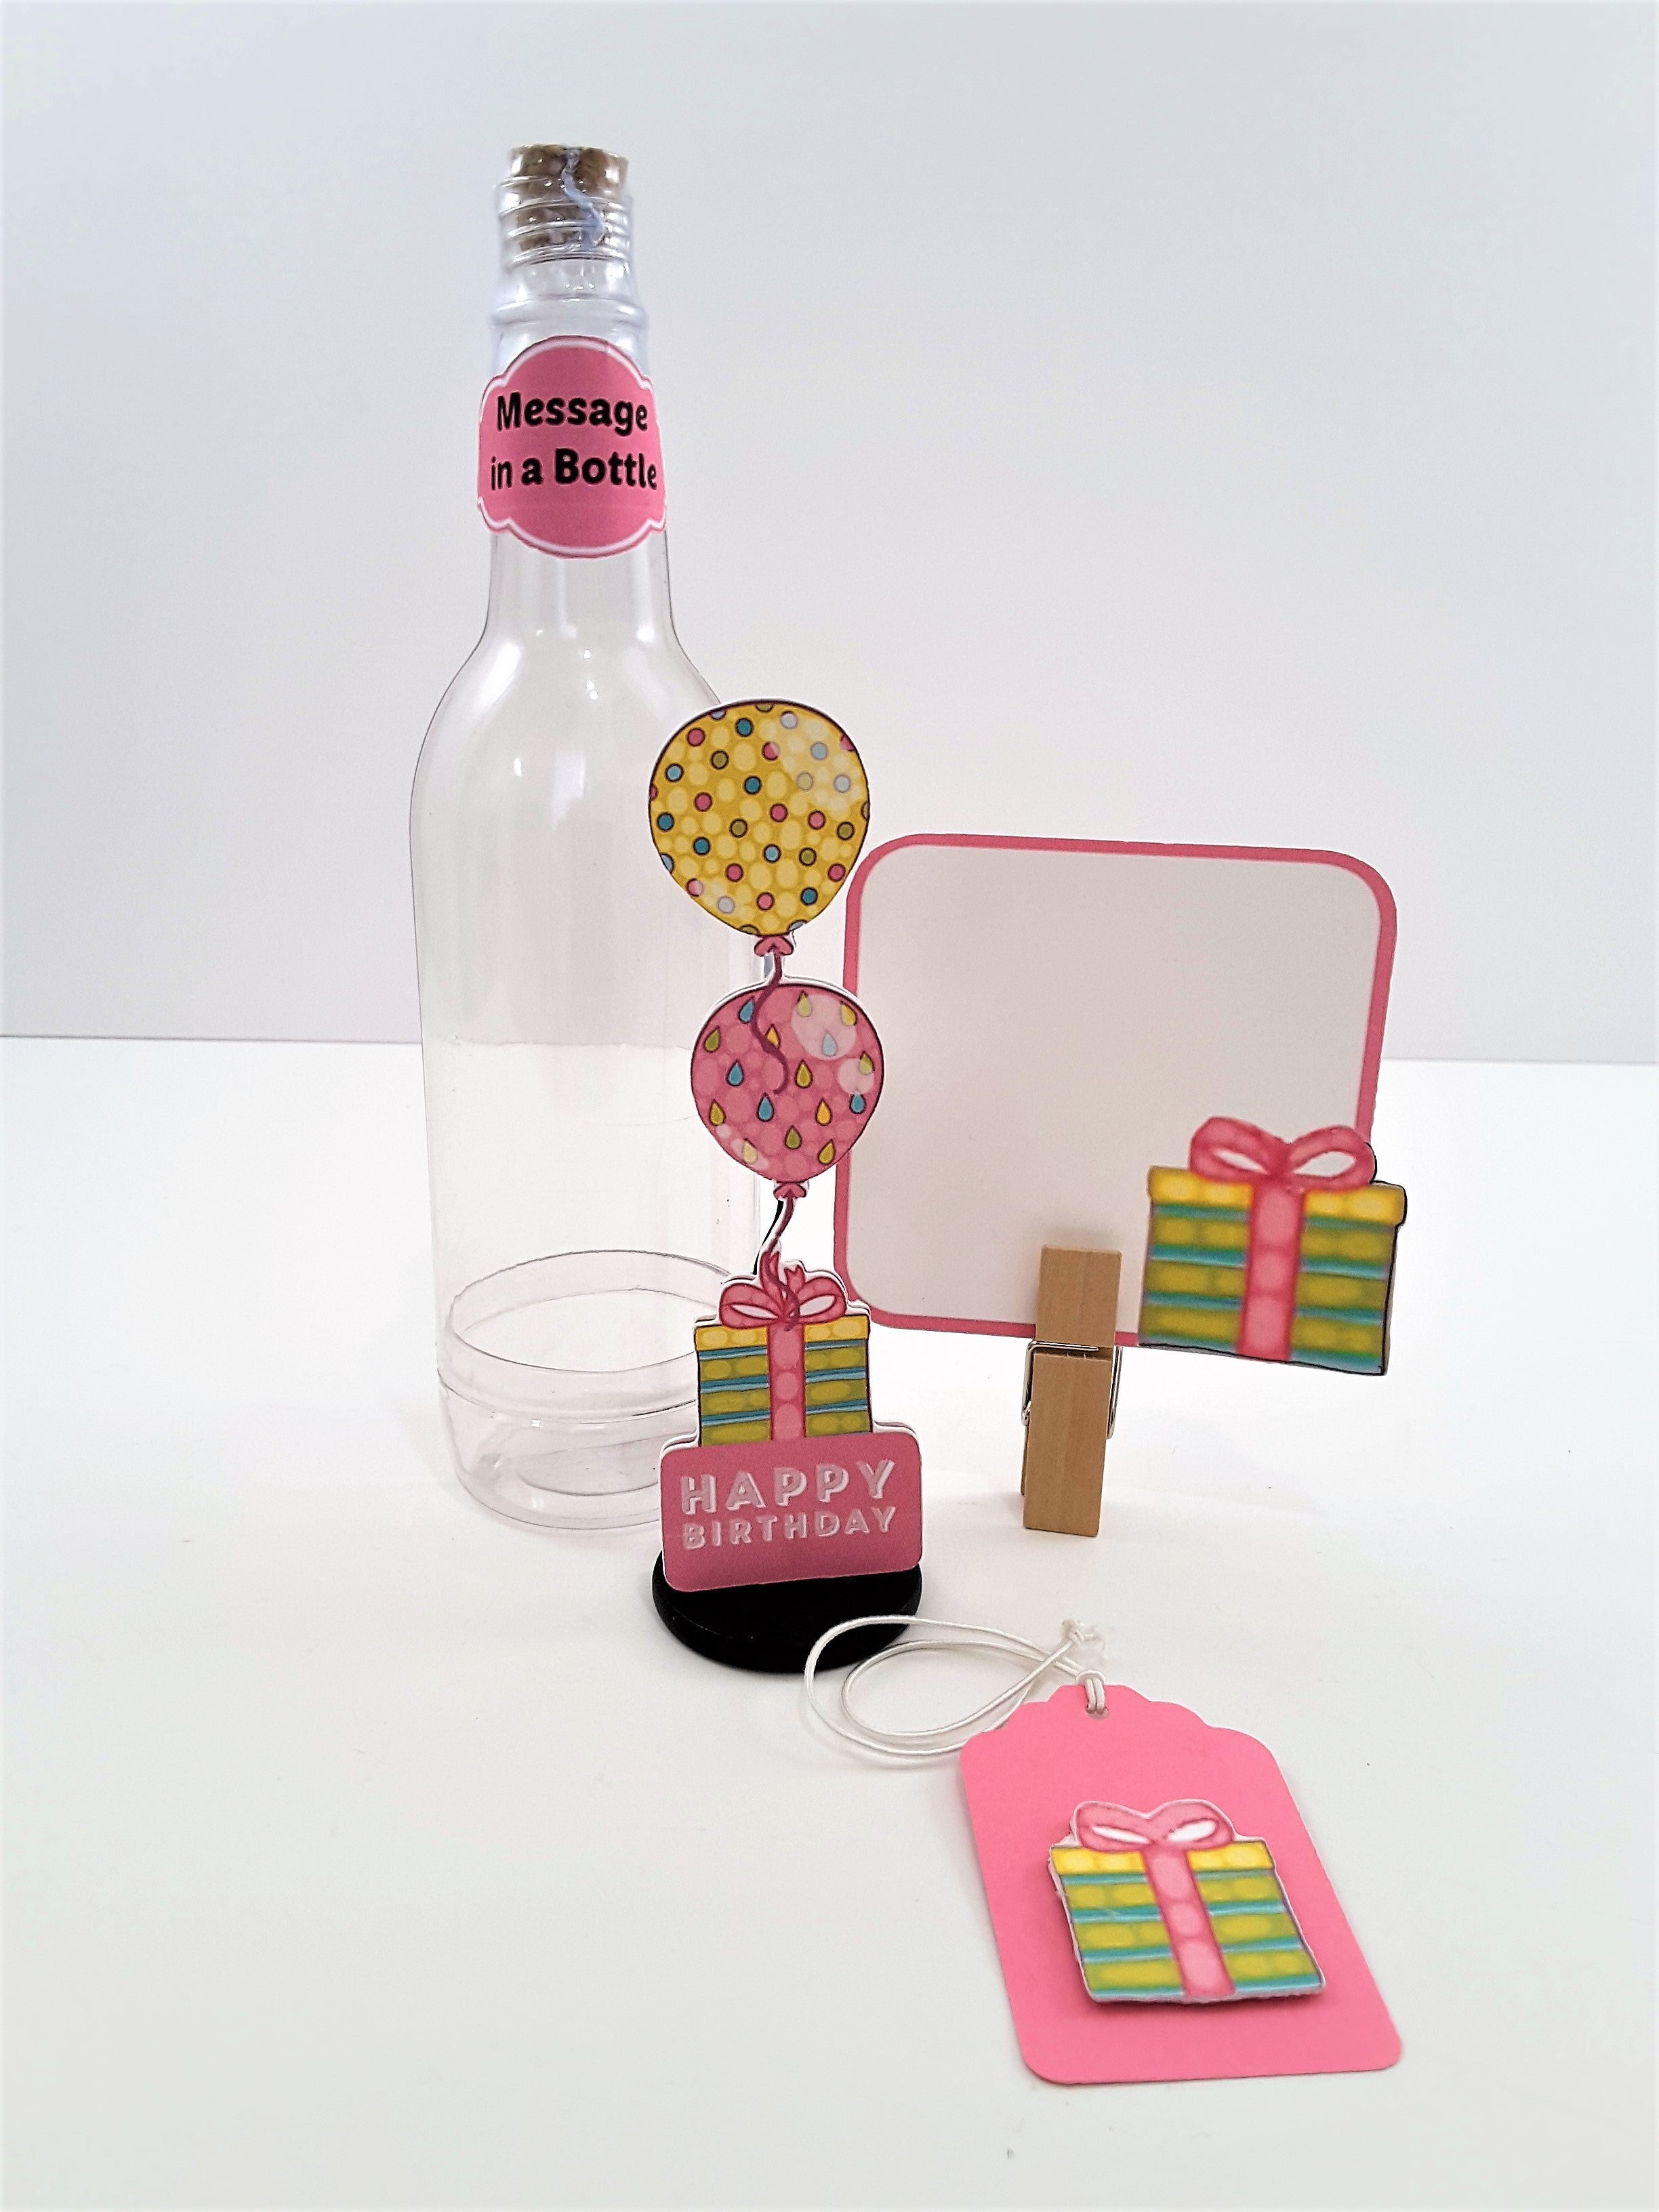 Message in a Bottle Personalized 3D Happy Birthday Card with Balloons - TheLastWordBish.com